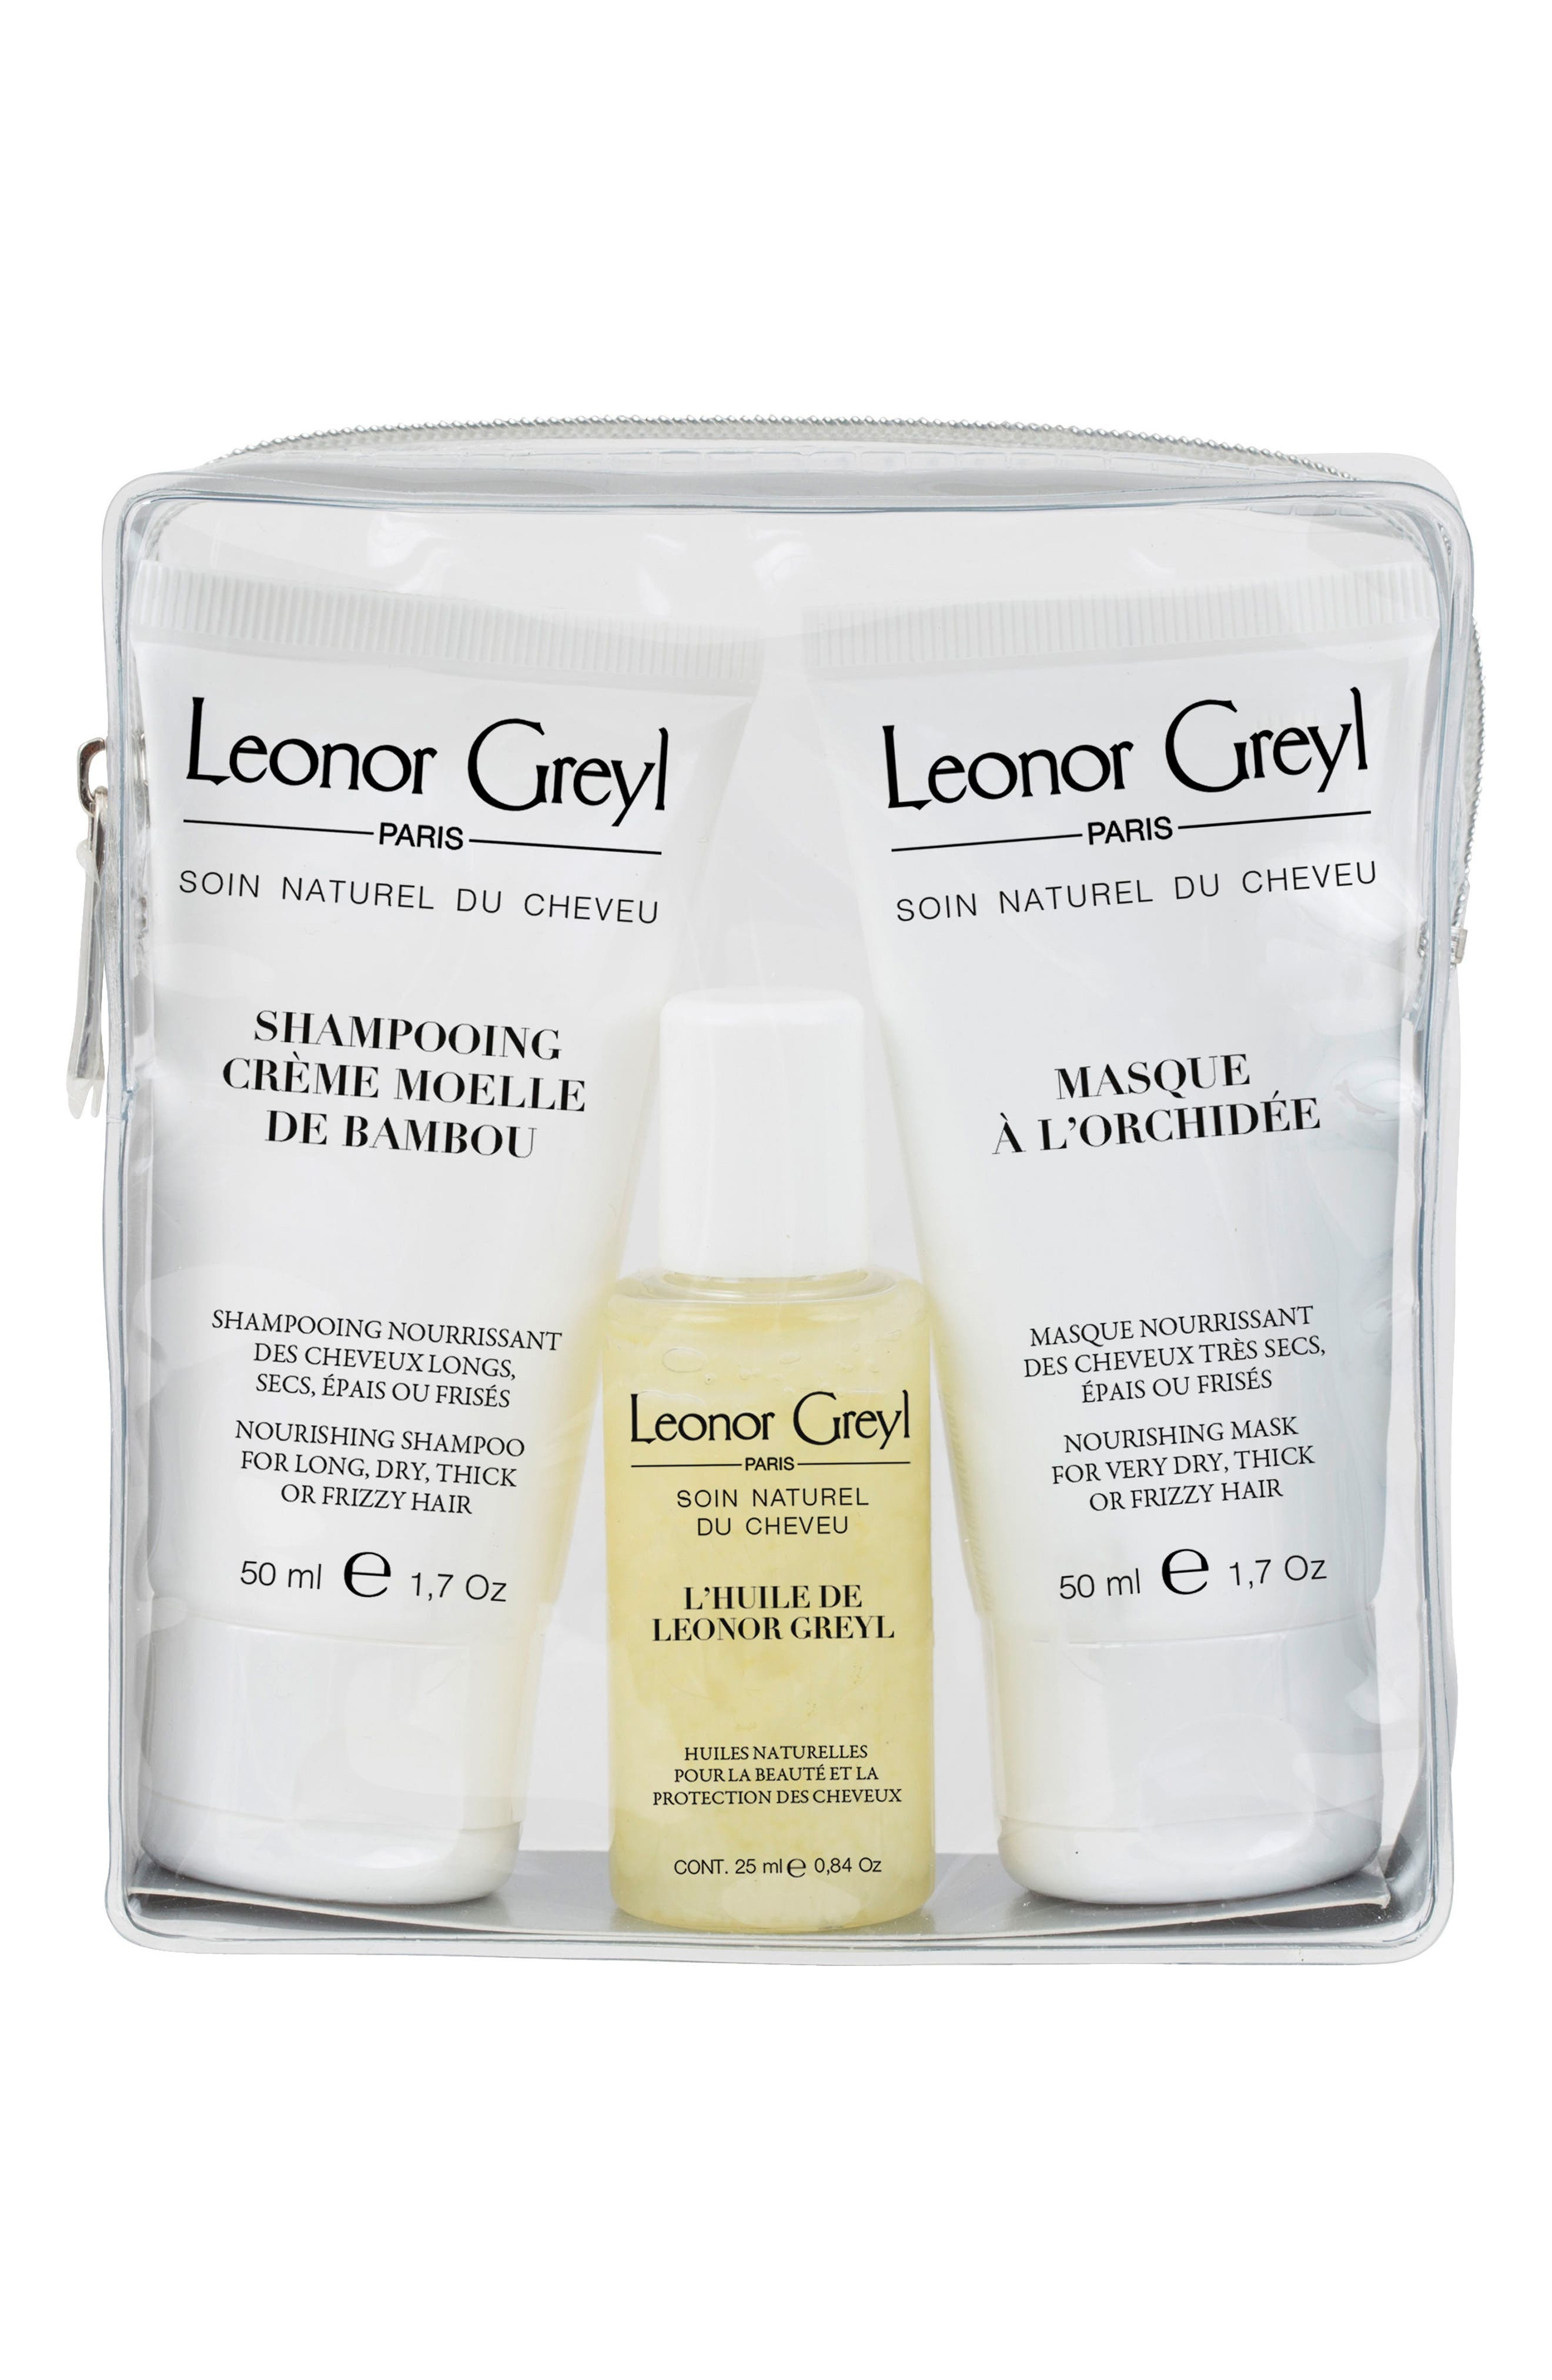 Luxury Travel Kit for Very Dry, Thick or Curly Hair,                             Main thumbnail 1, color,                             NO COLOR